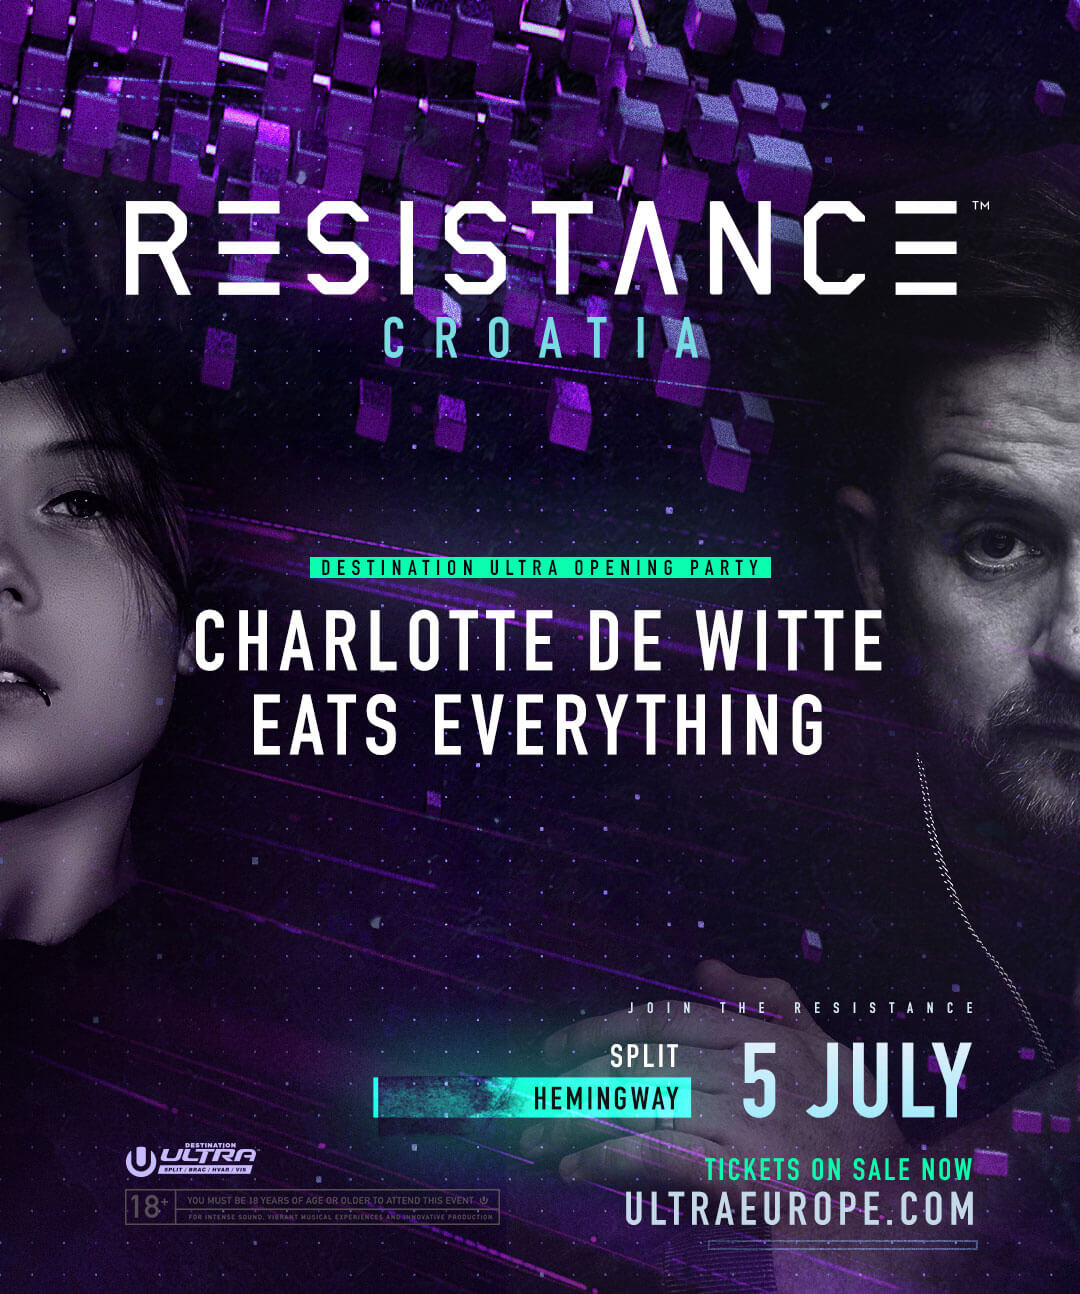 RESISTANCE Croatia – Destination Ultra Opening Party